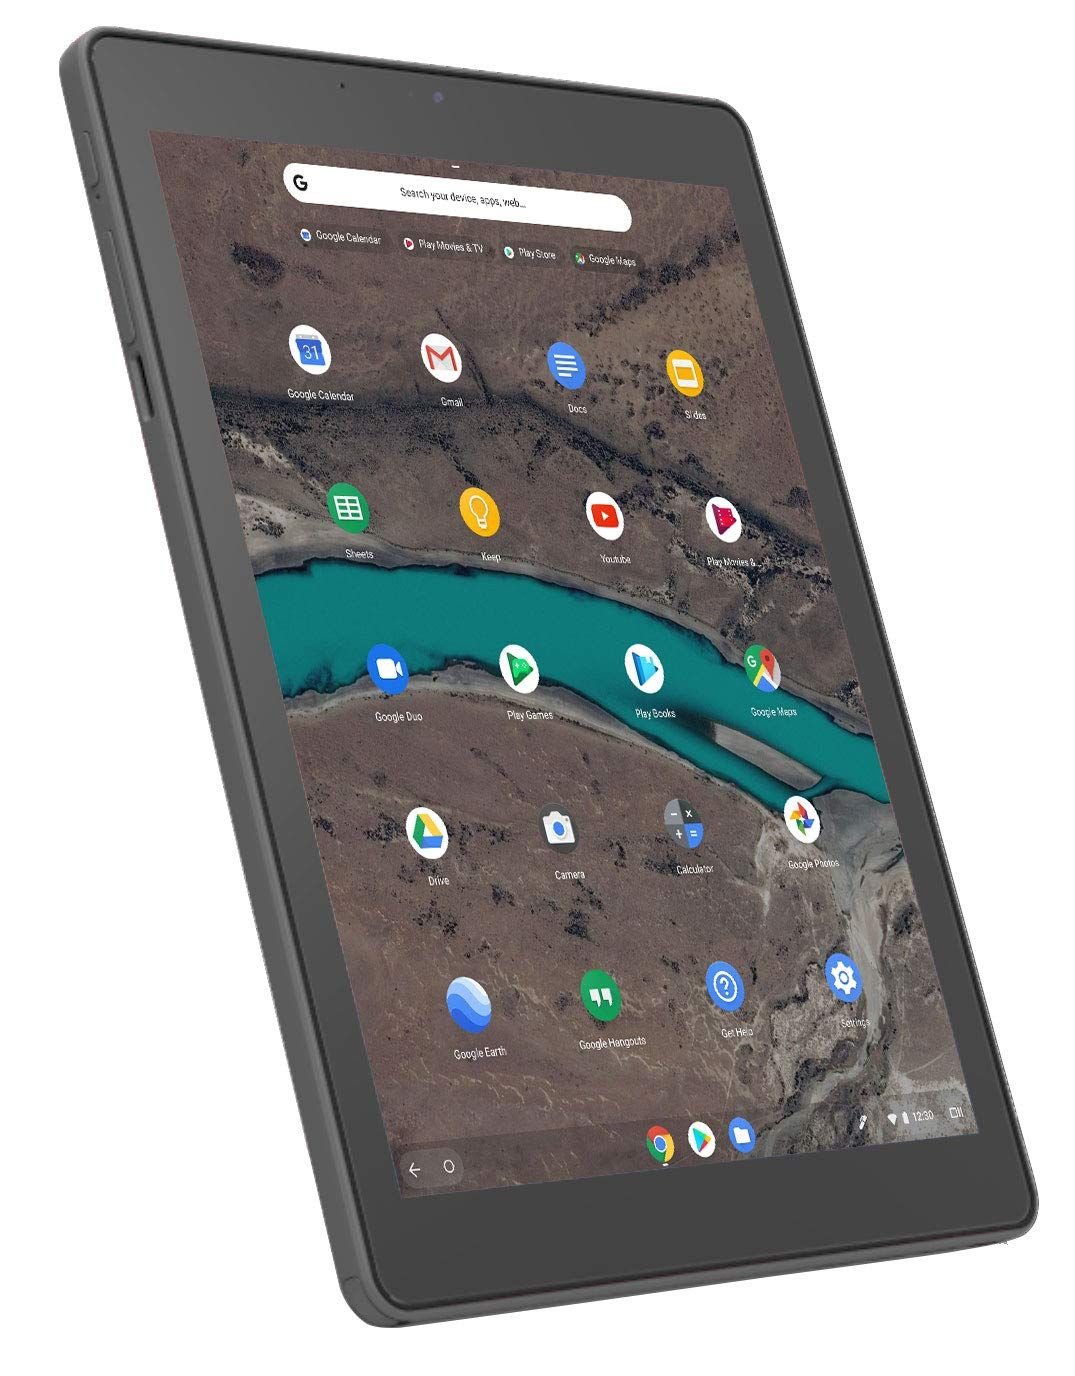 CTL Chromebook Tx1 Tablet in 2020 Tablet, Chromebook